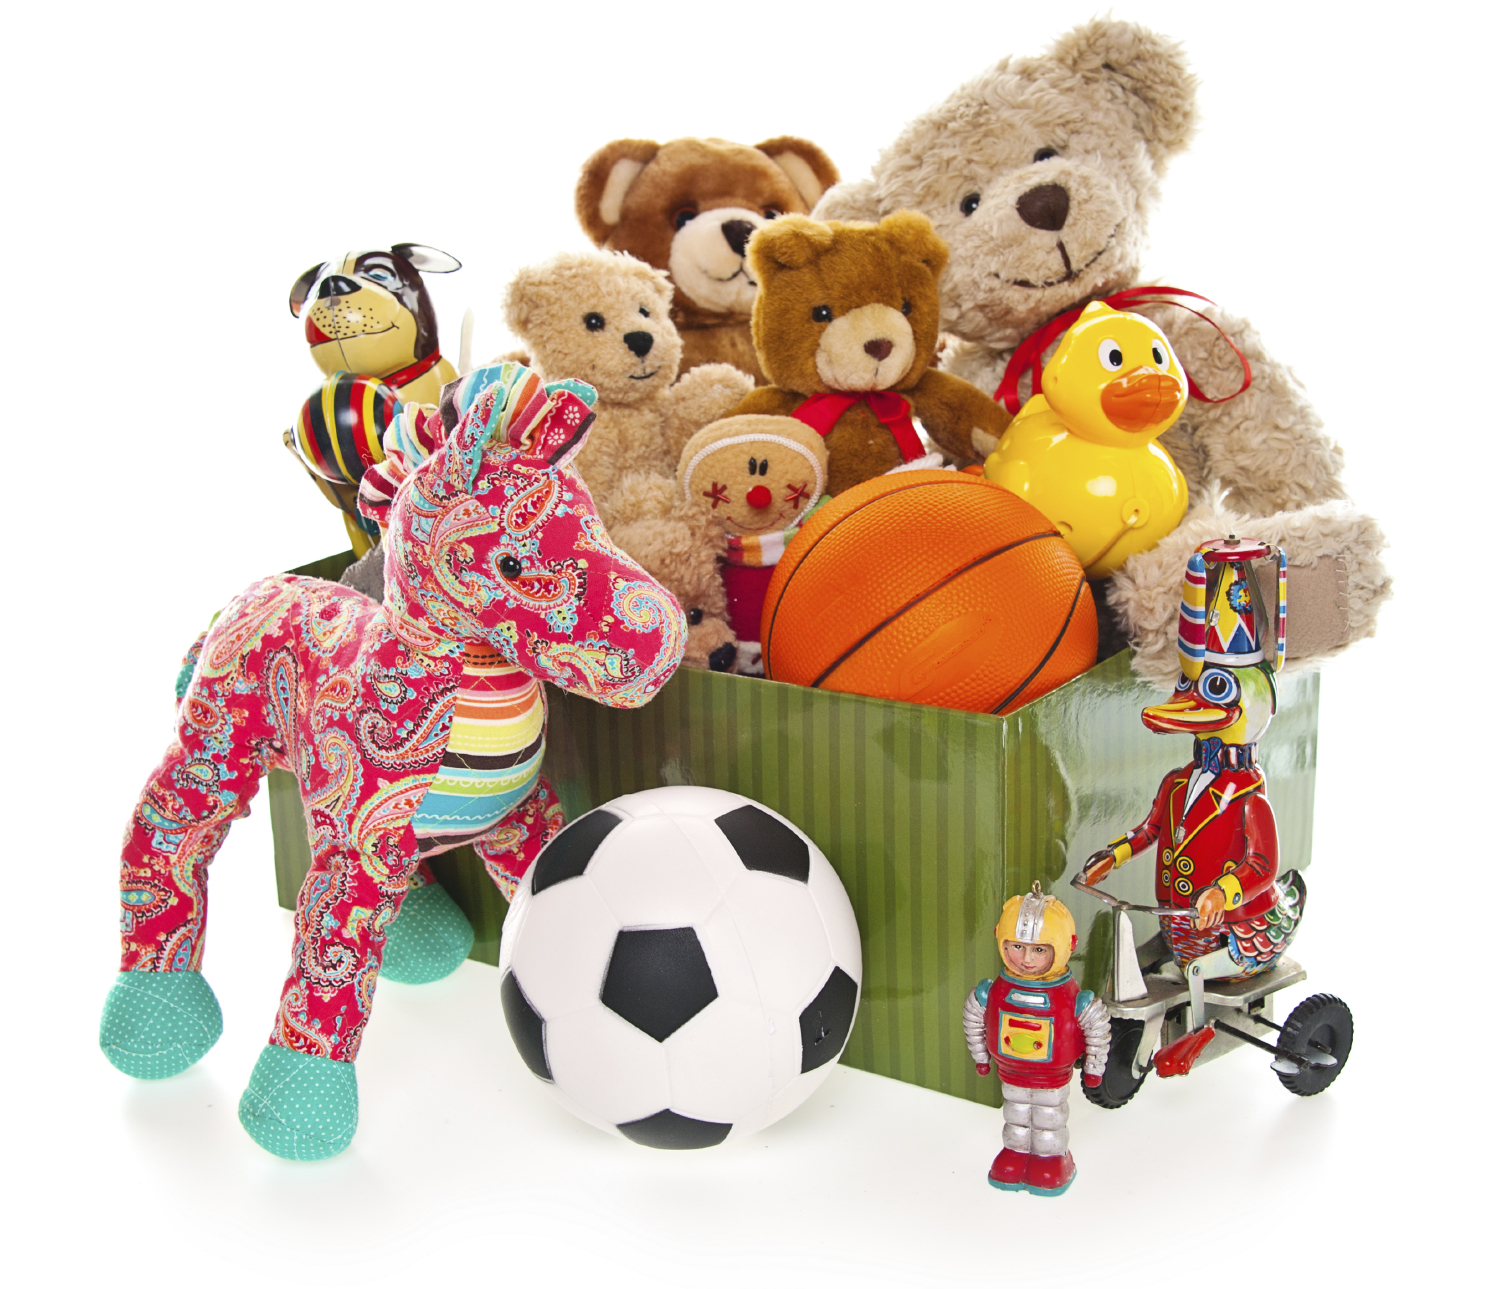 Toddler Toys Photography : Toy appeal from ward councillor cidc